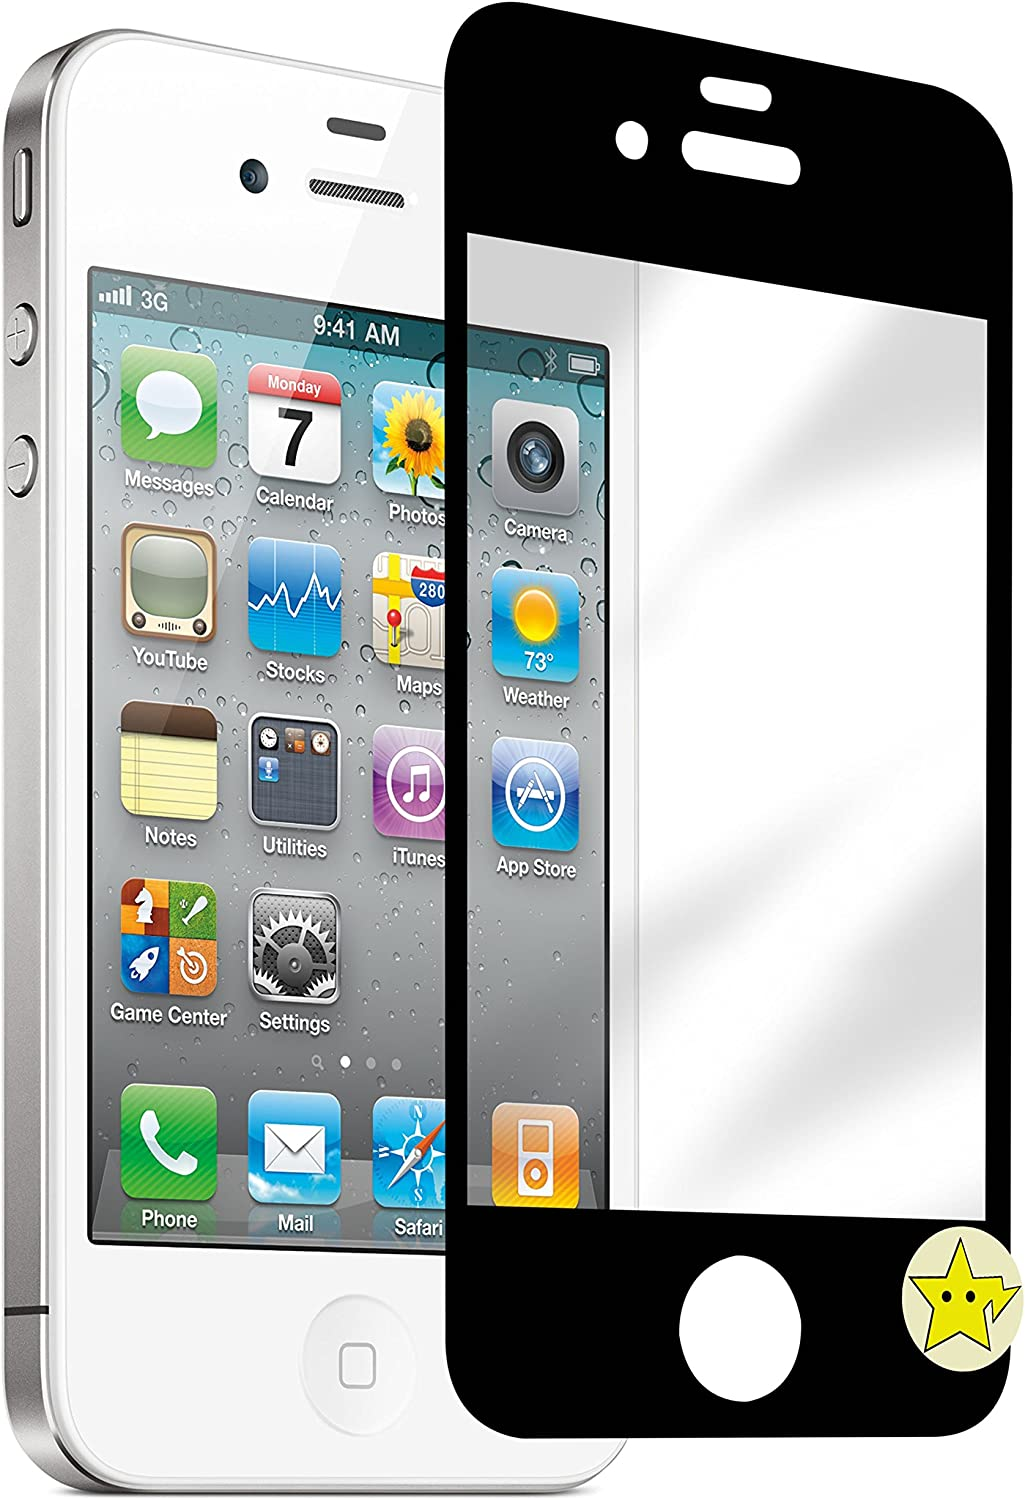 Tempered Glass Protective Face Plate Screen Protector for iPhone 4s, Black with Home Button Stickers